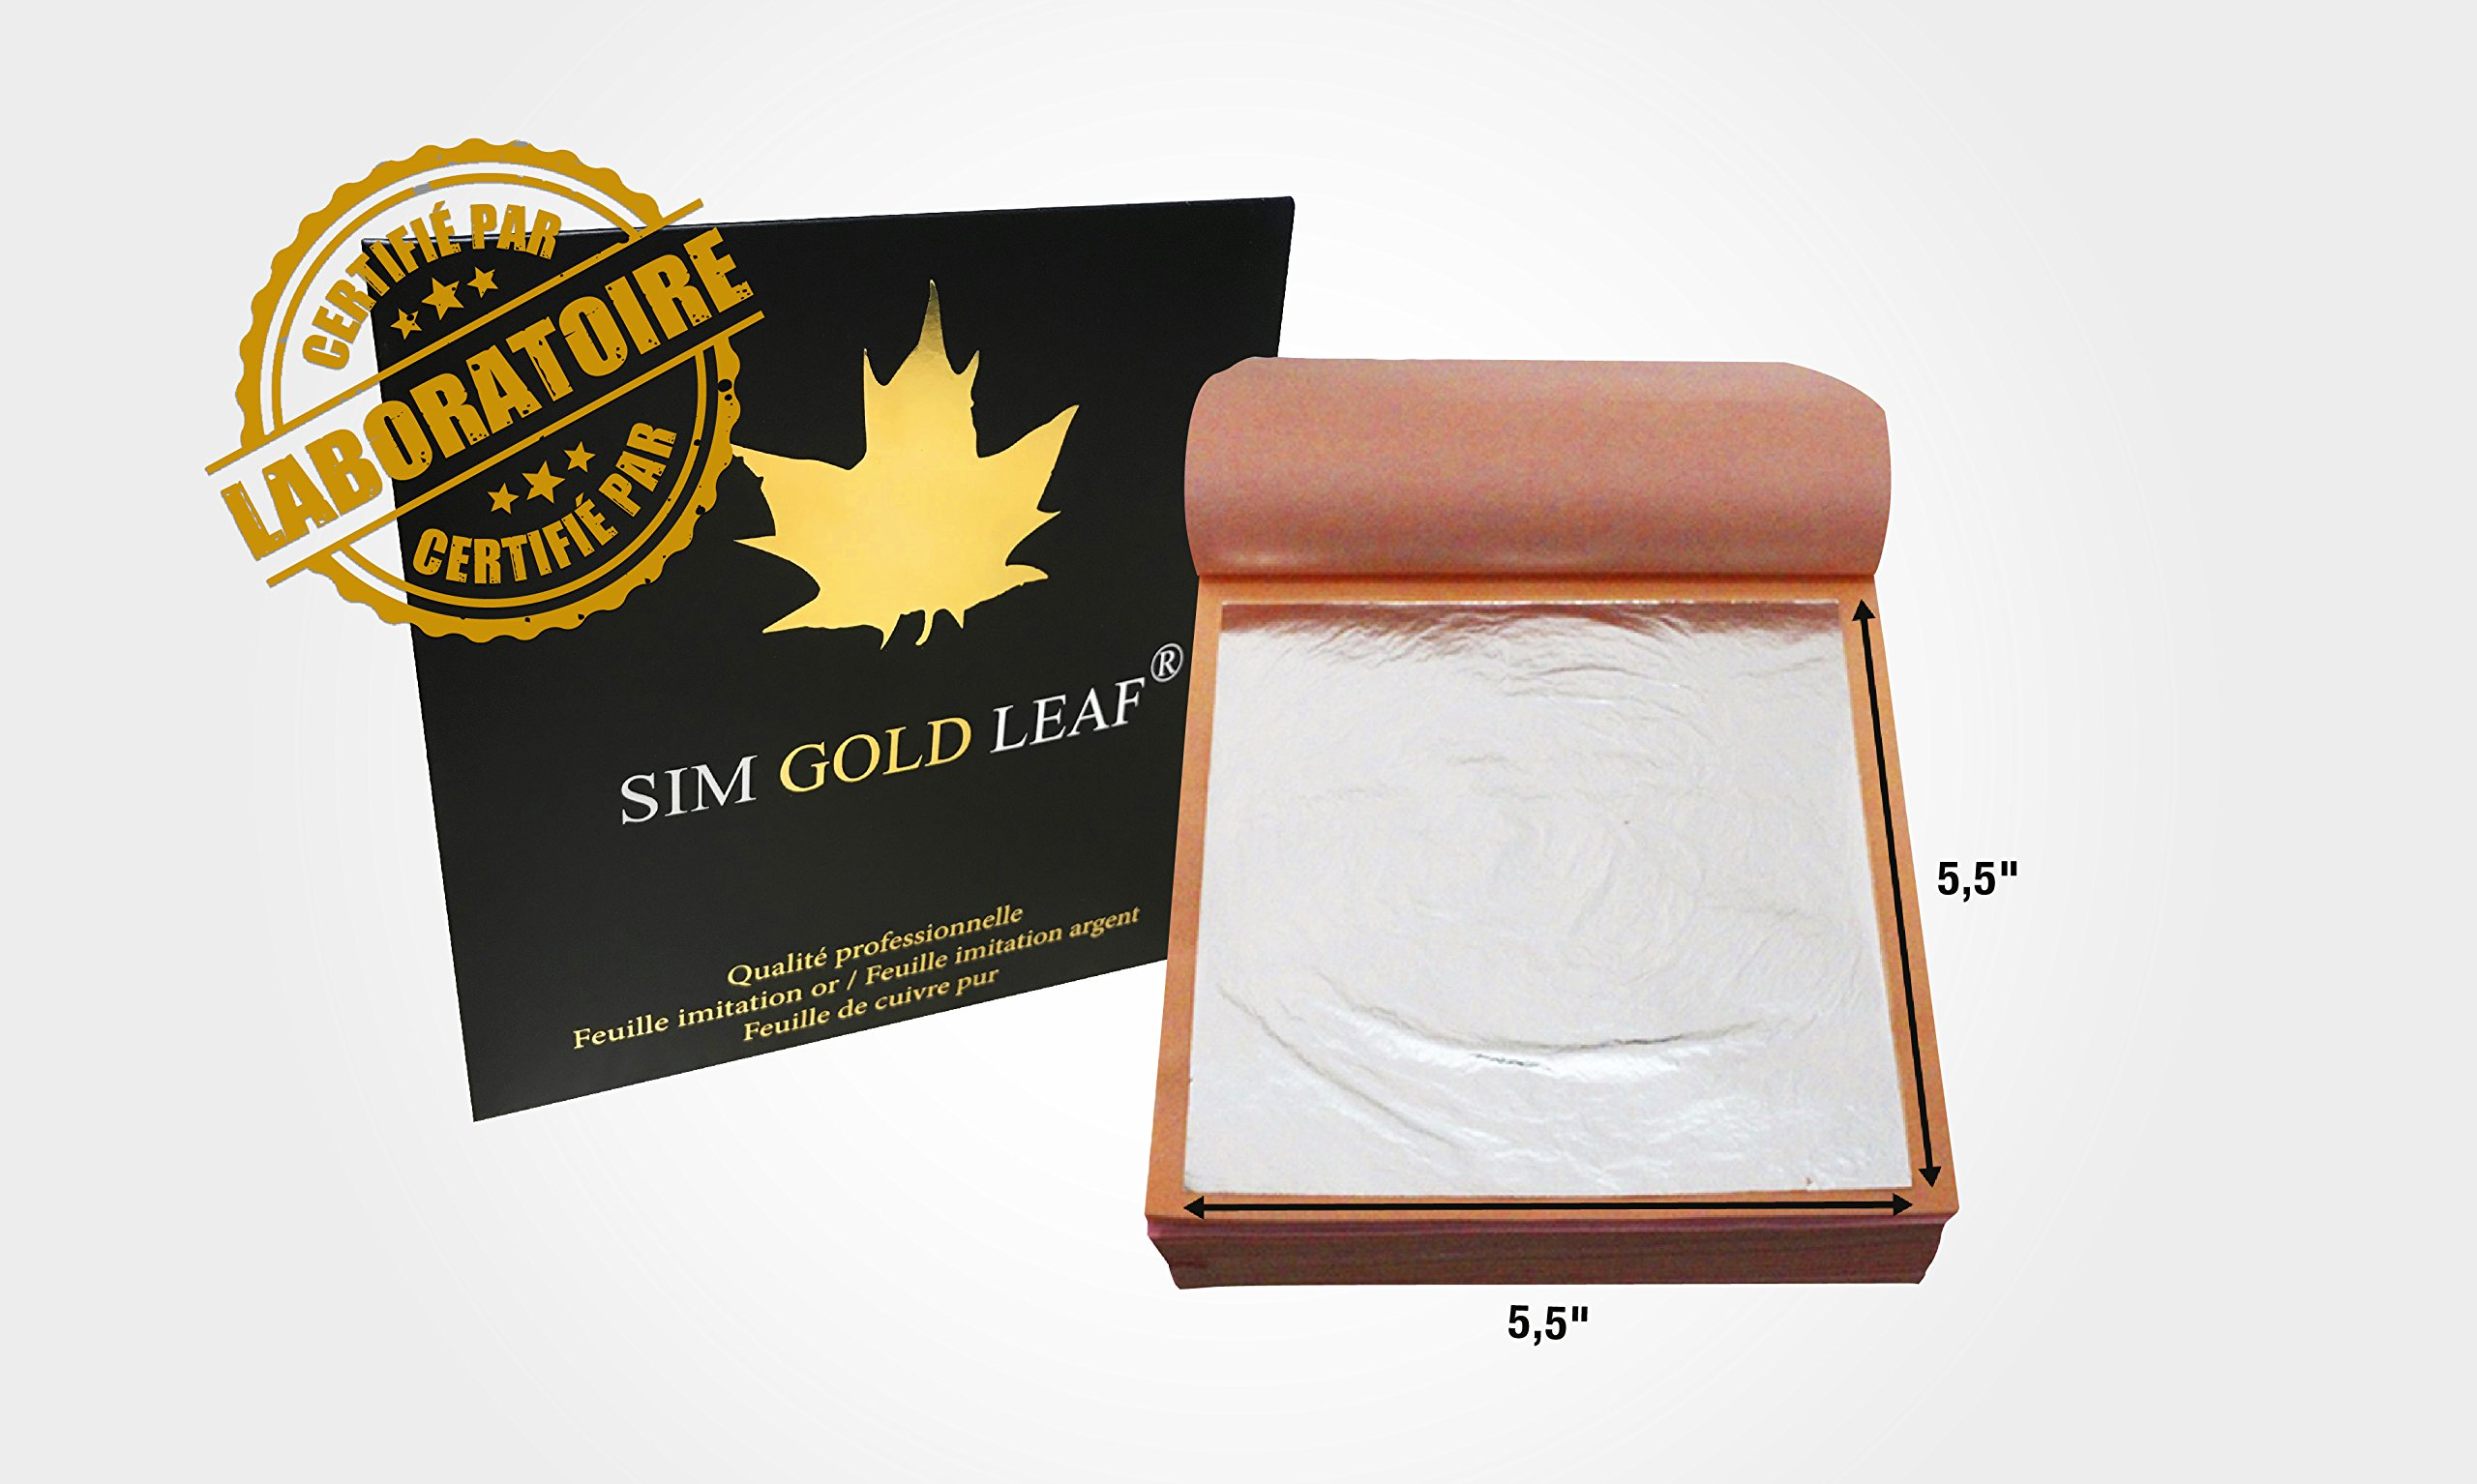 Professional Quality Imitation Silver (Aluminum) Leaf Sheets, 25 Sheets, 5.5 inches Booklet